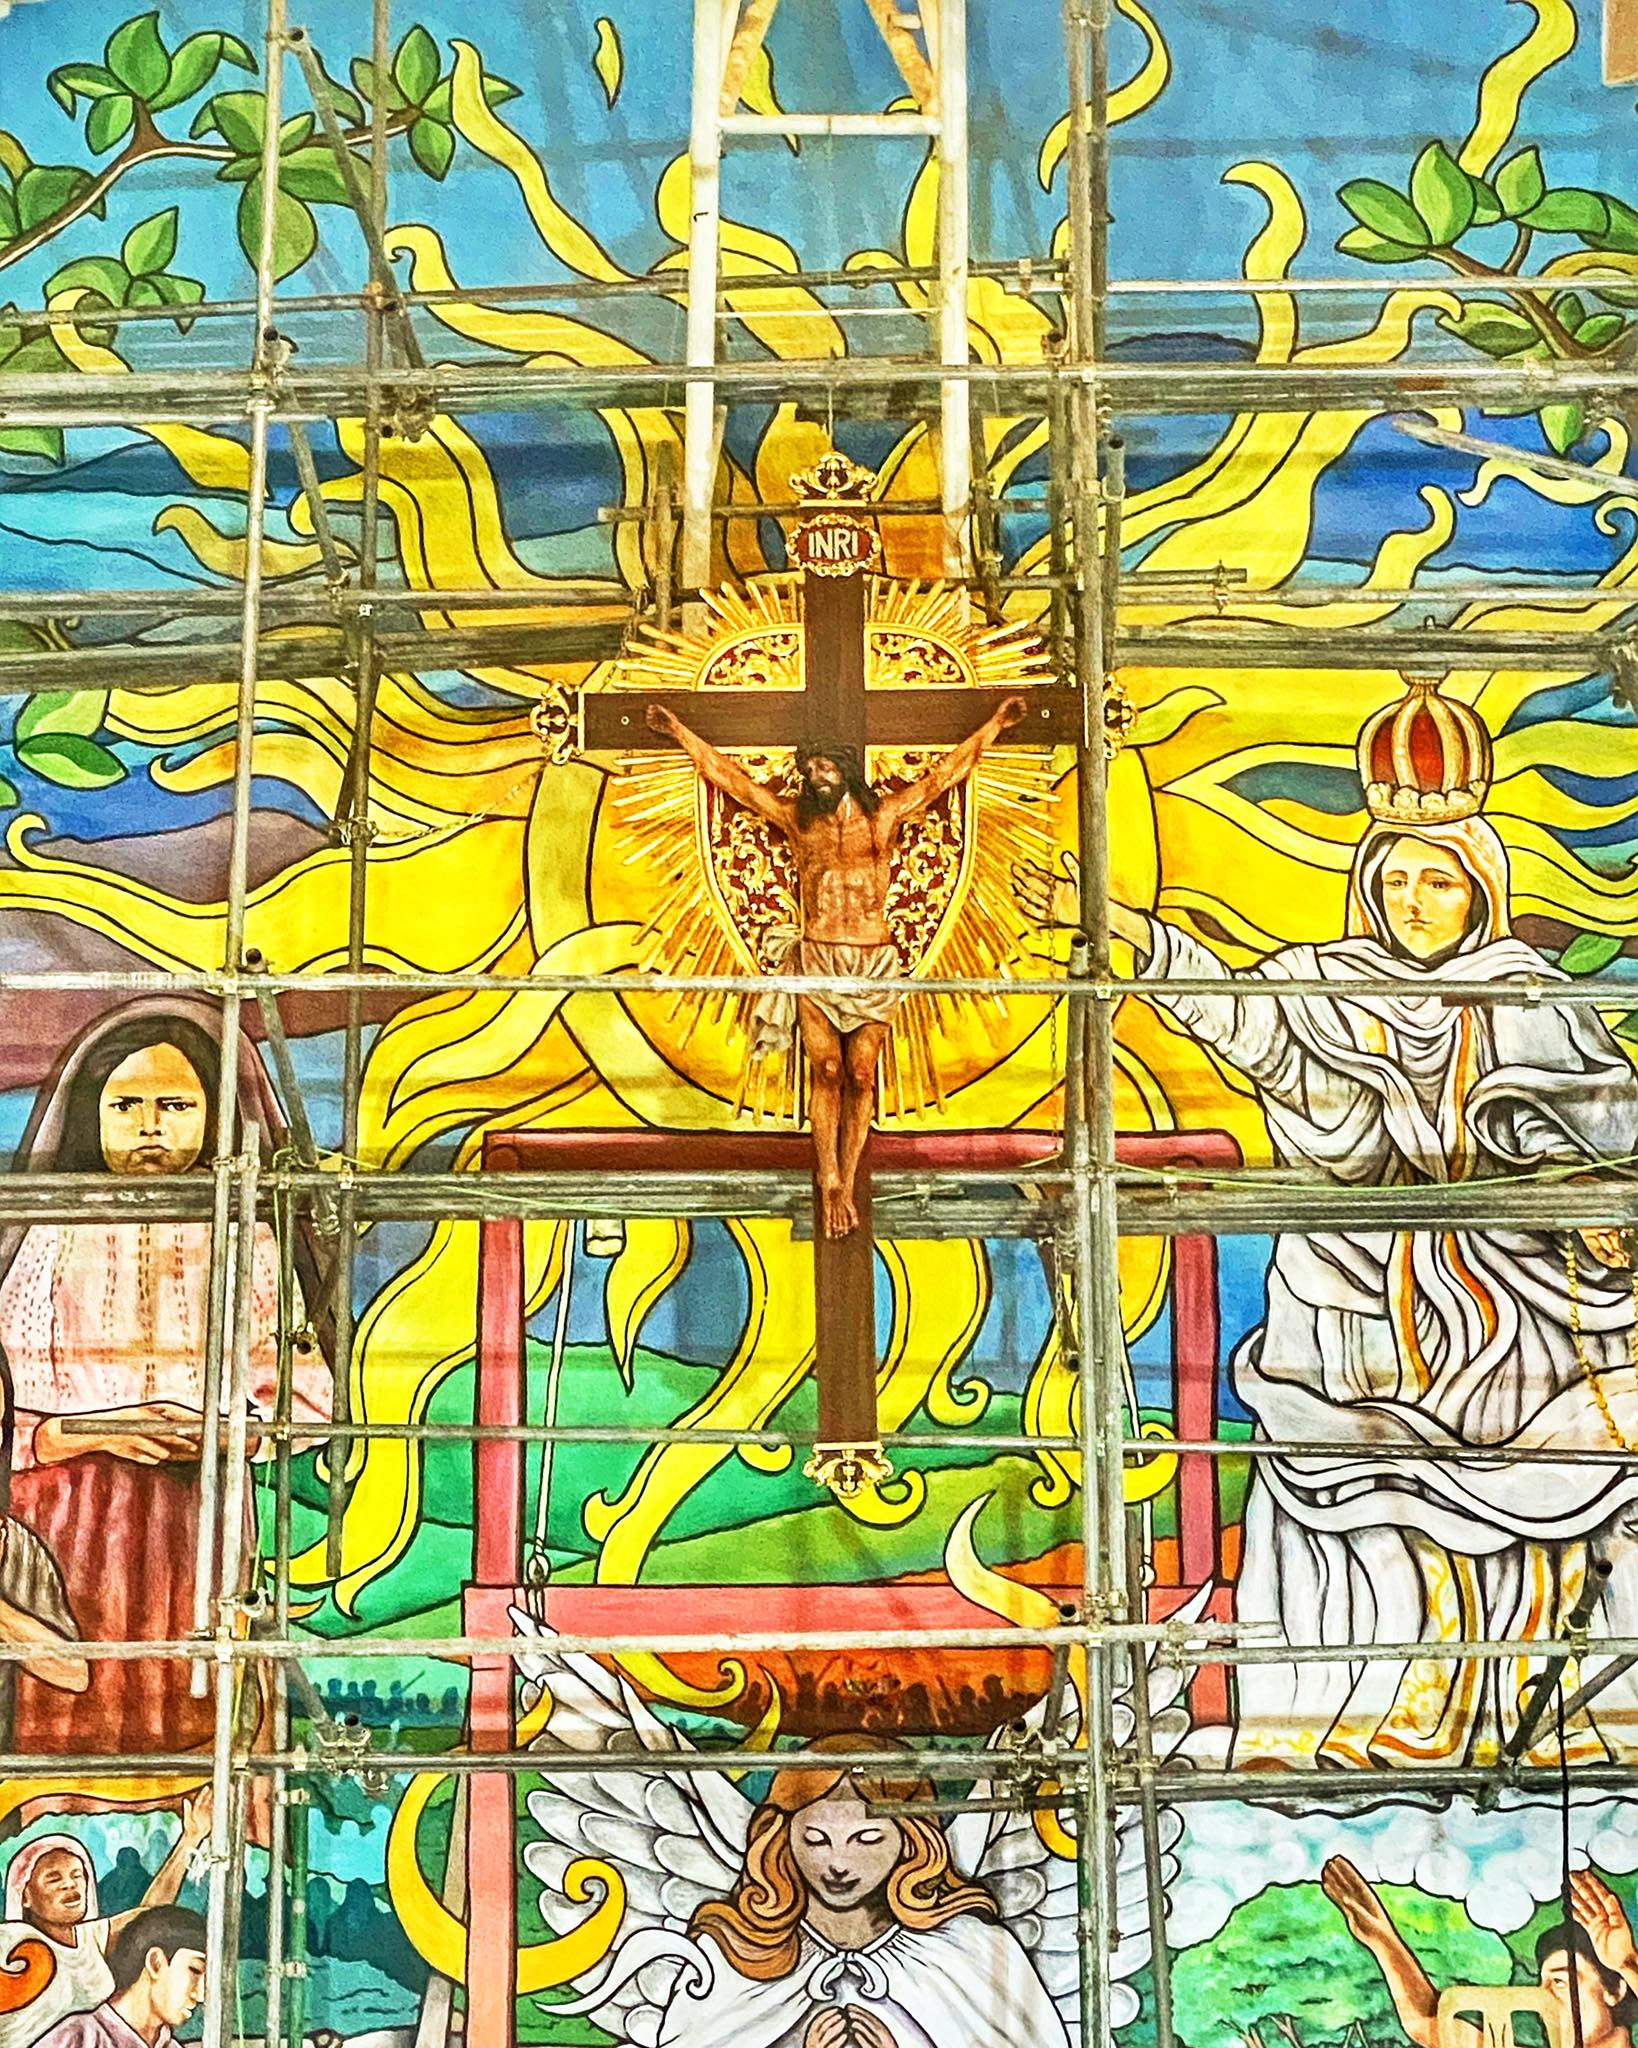 DIOCESE OF NOVALICHES UNVEILS BIGGEST ALTAR MURAL IN THE PHILIPPINES AS TRIBUTE TO COVID-19 FRONTLINERS